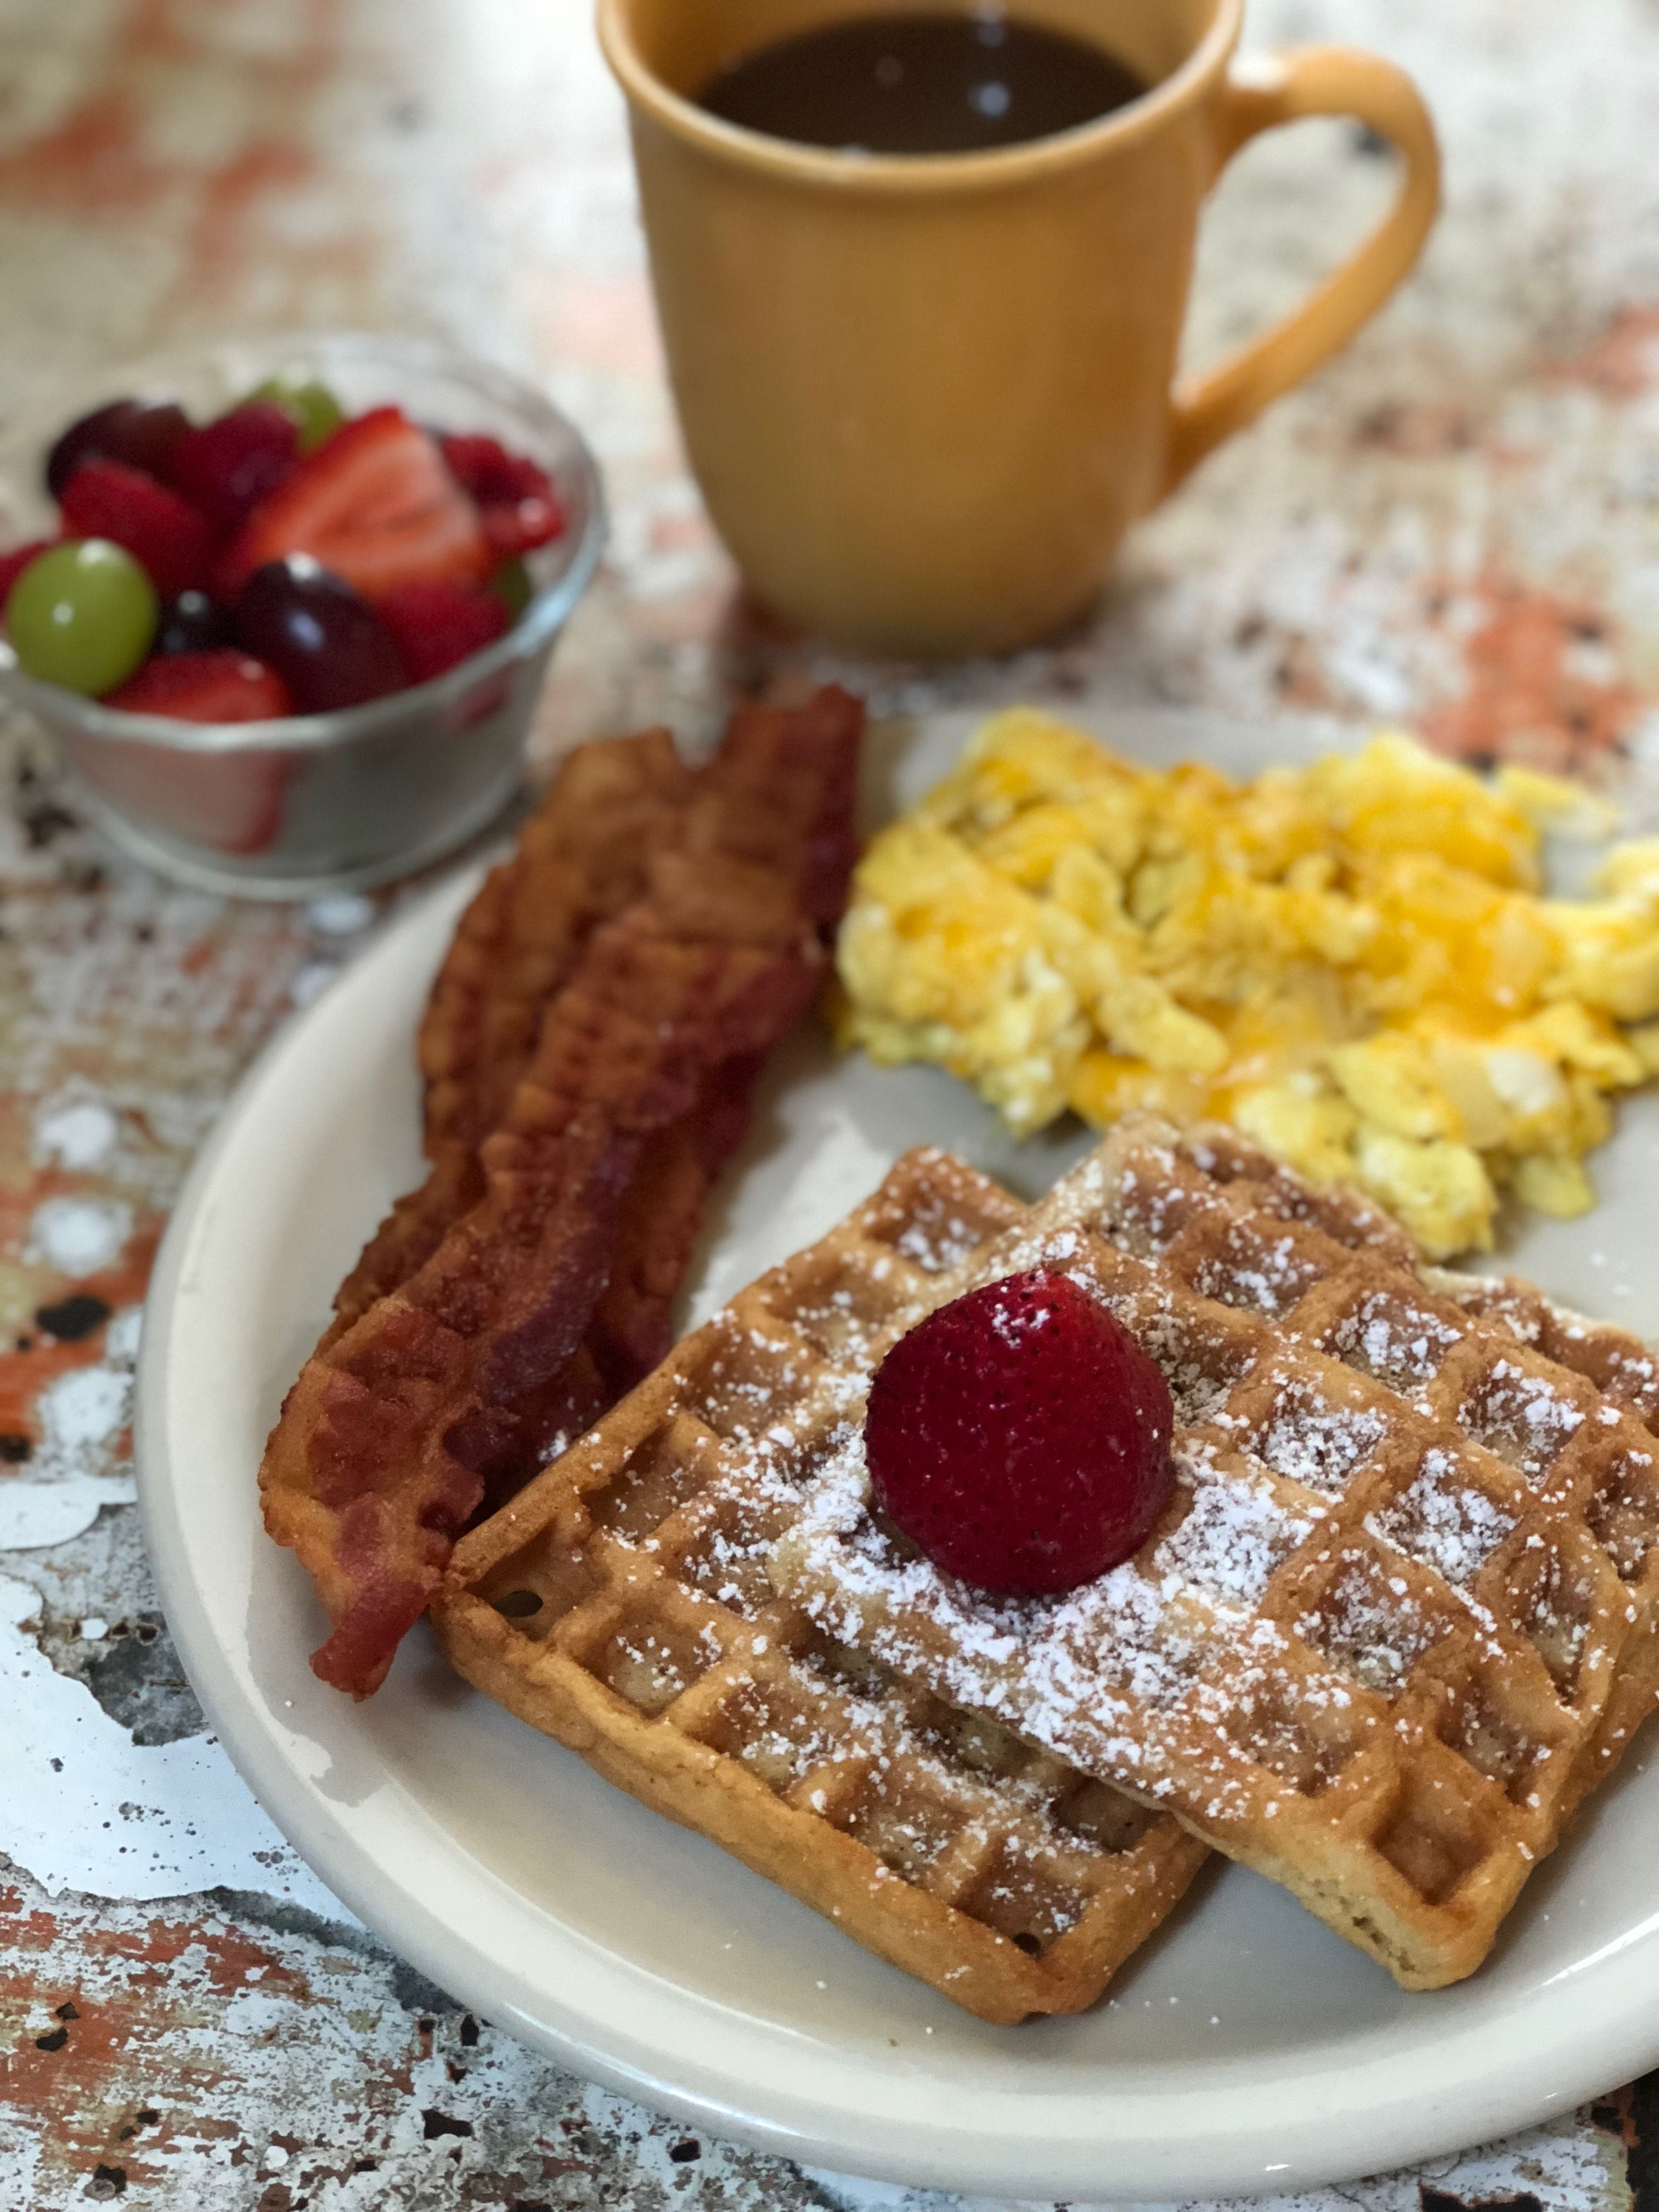 Every day at Sugarberry Inn begins with a homemade